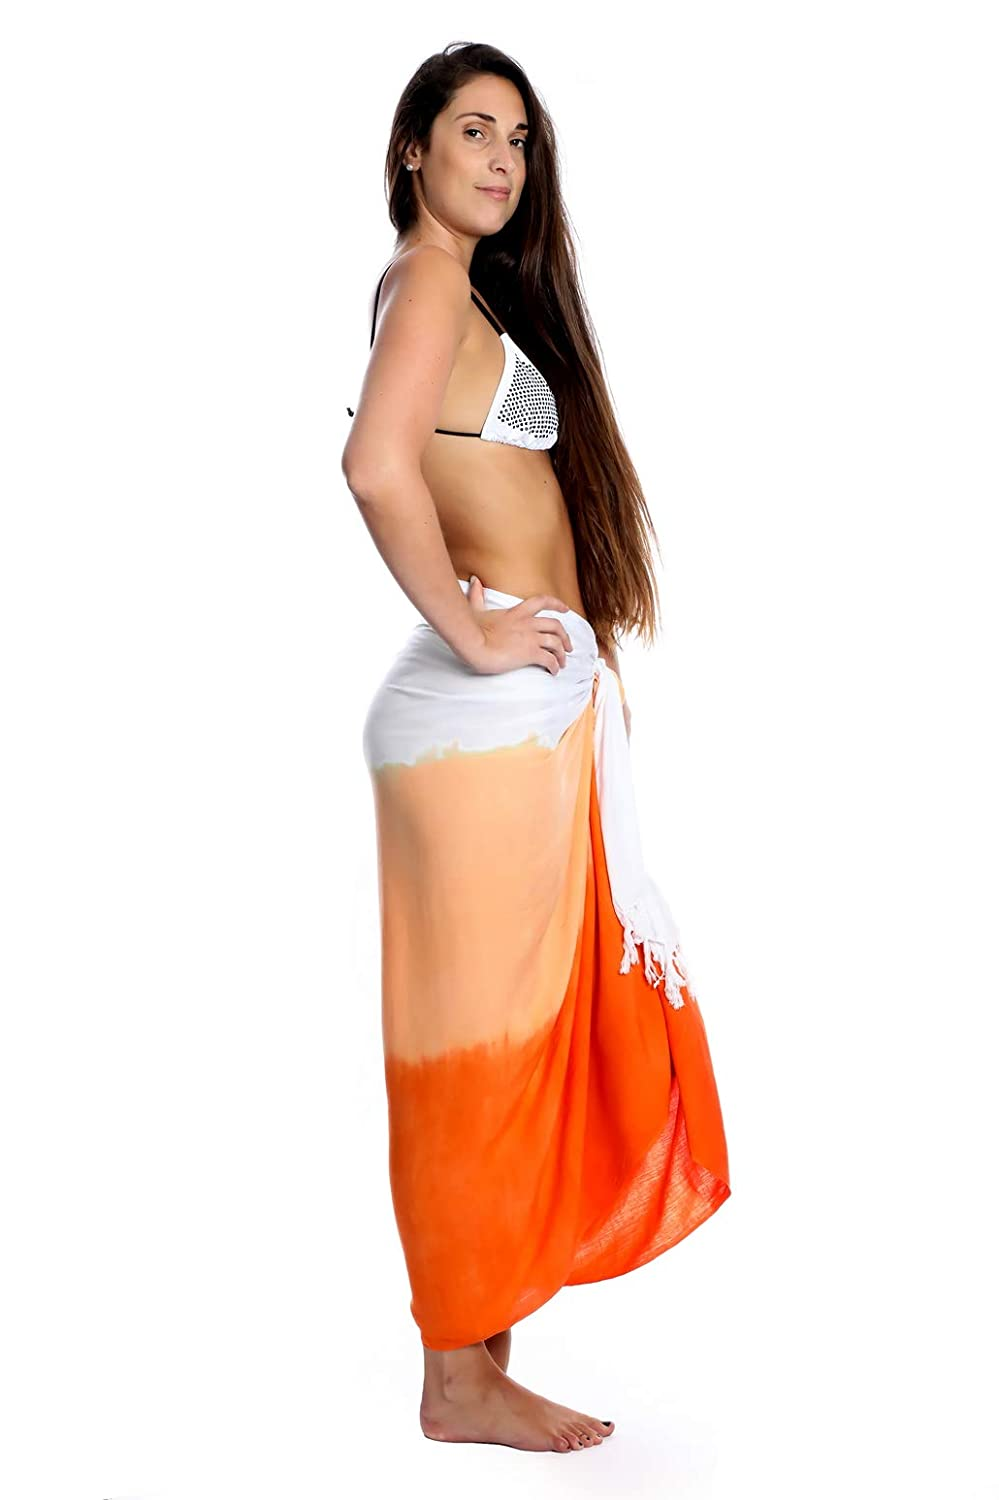 fc0225344 Uluwatu Collection Women's Tie Dye Sarong Beach Wrap Swimsuit Cover up  Pareo (Orange) at Amazon Women's Clothing store: